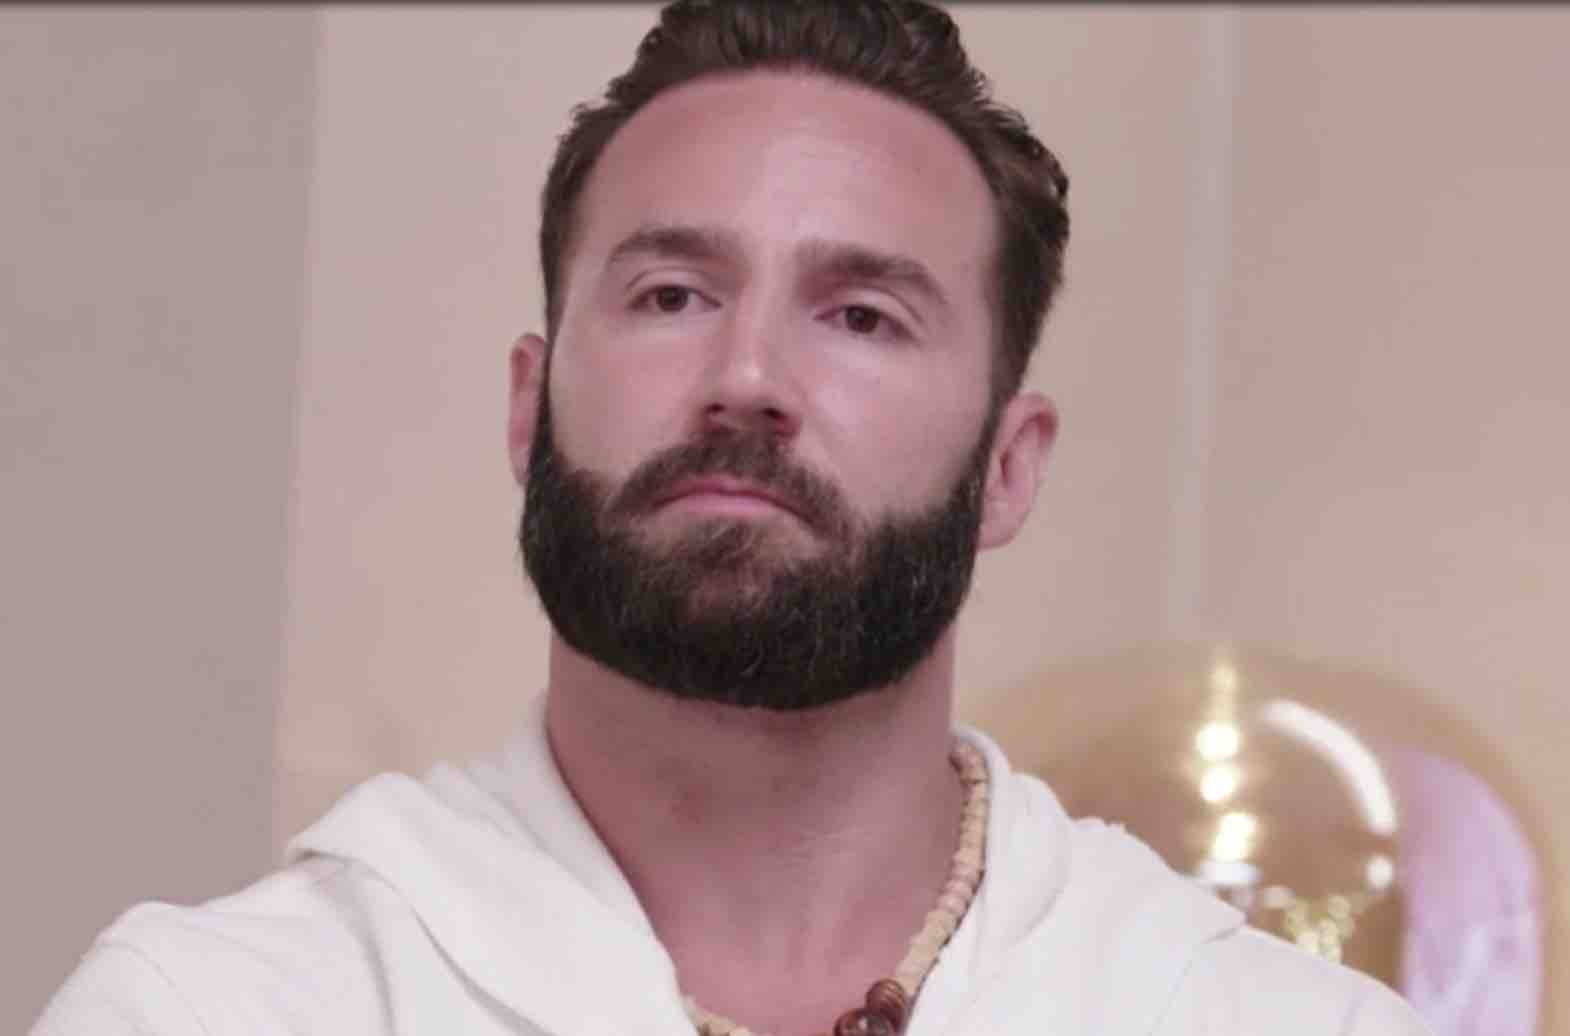 Temptation Island Season 3 Episode Recap: Blake The Fake